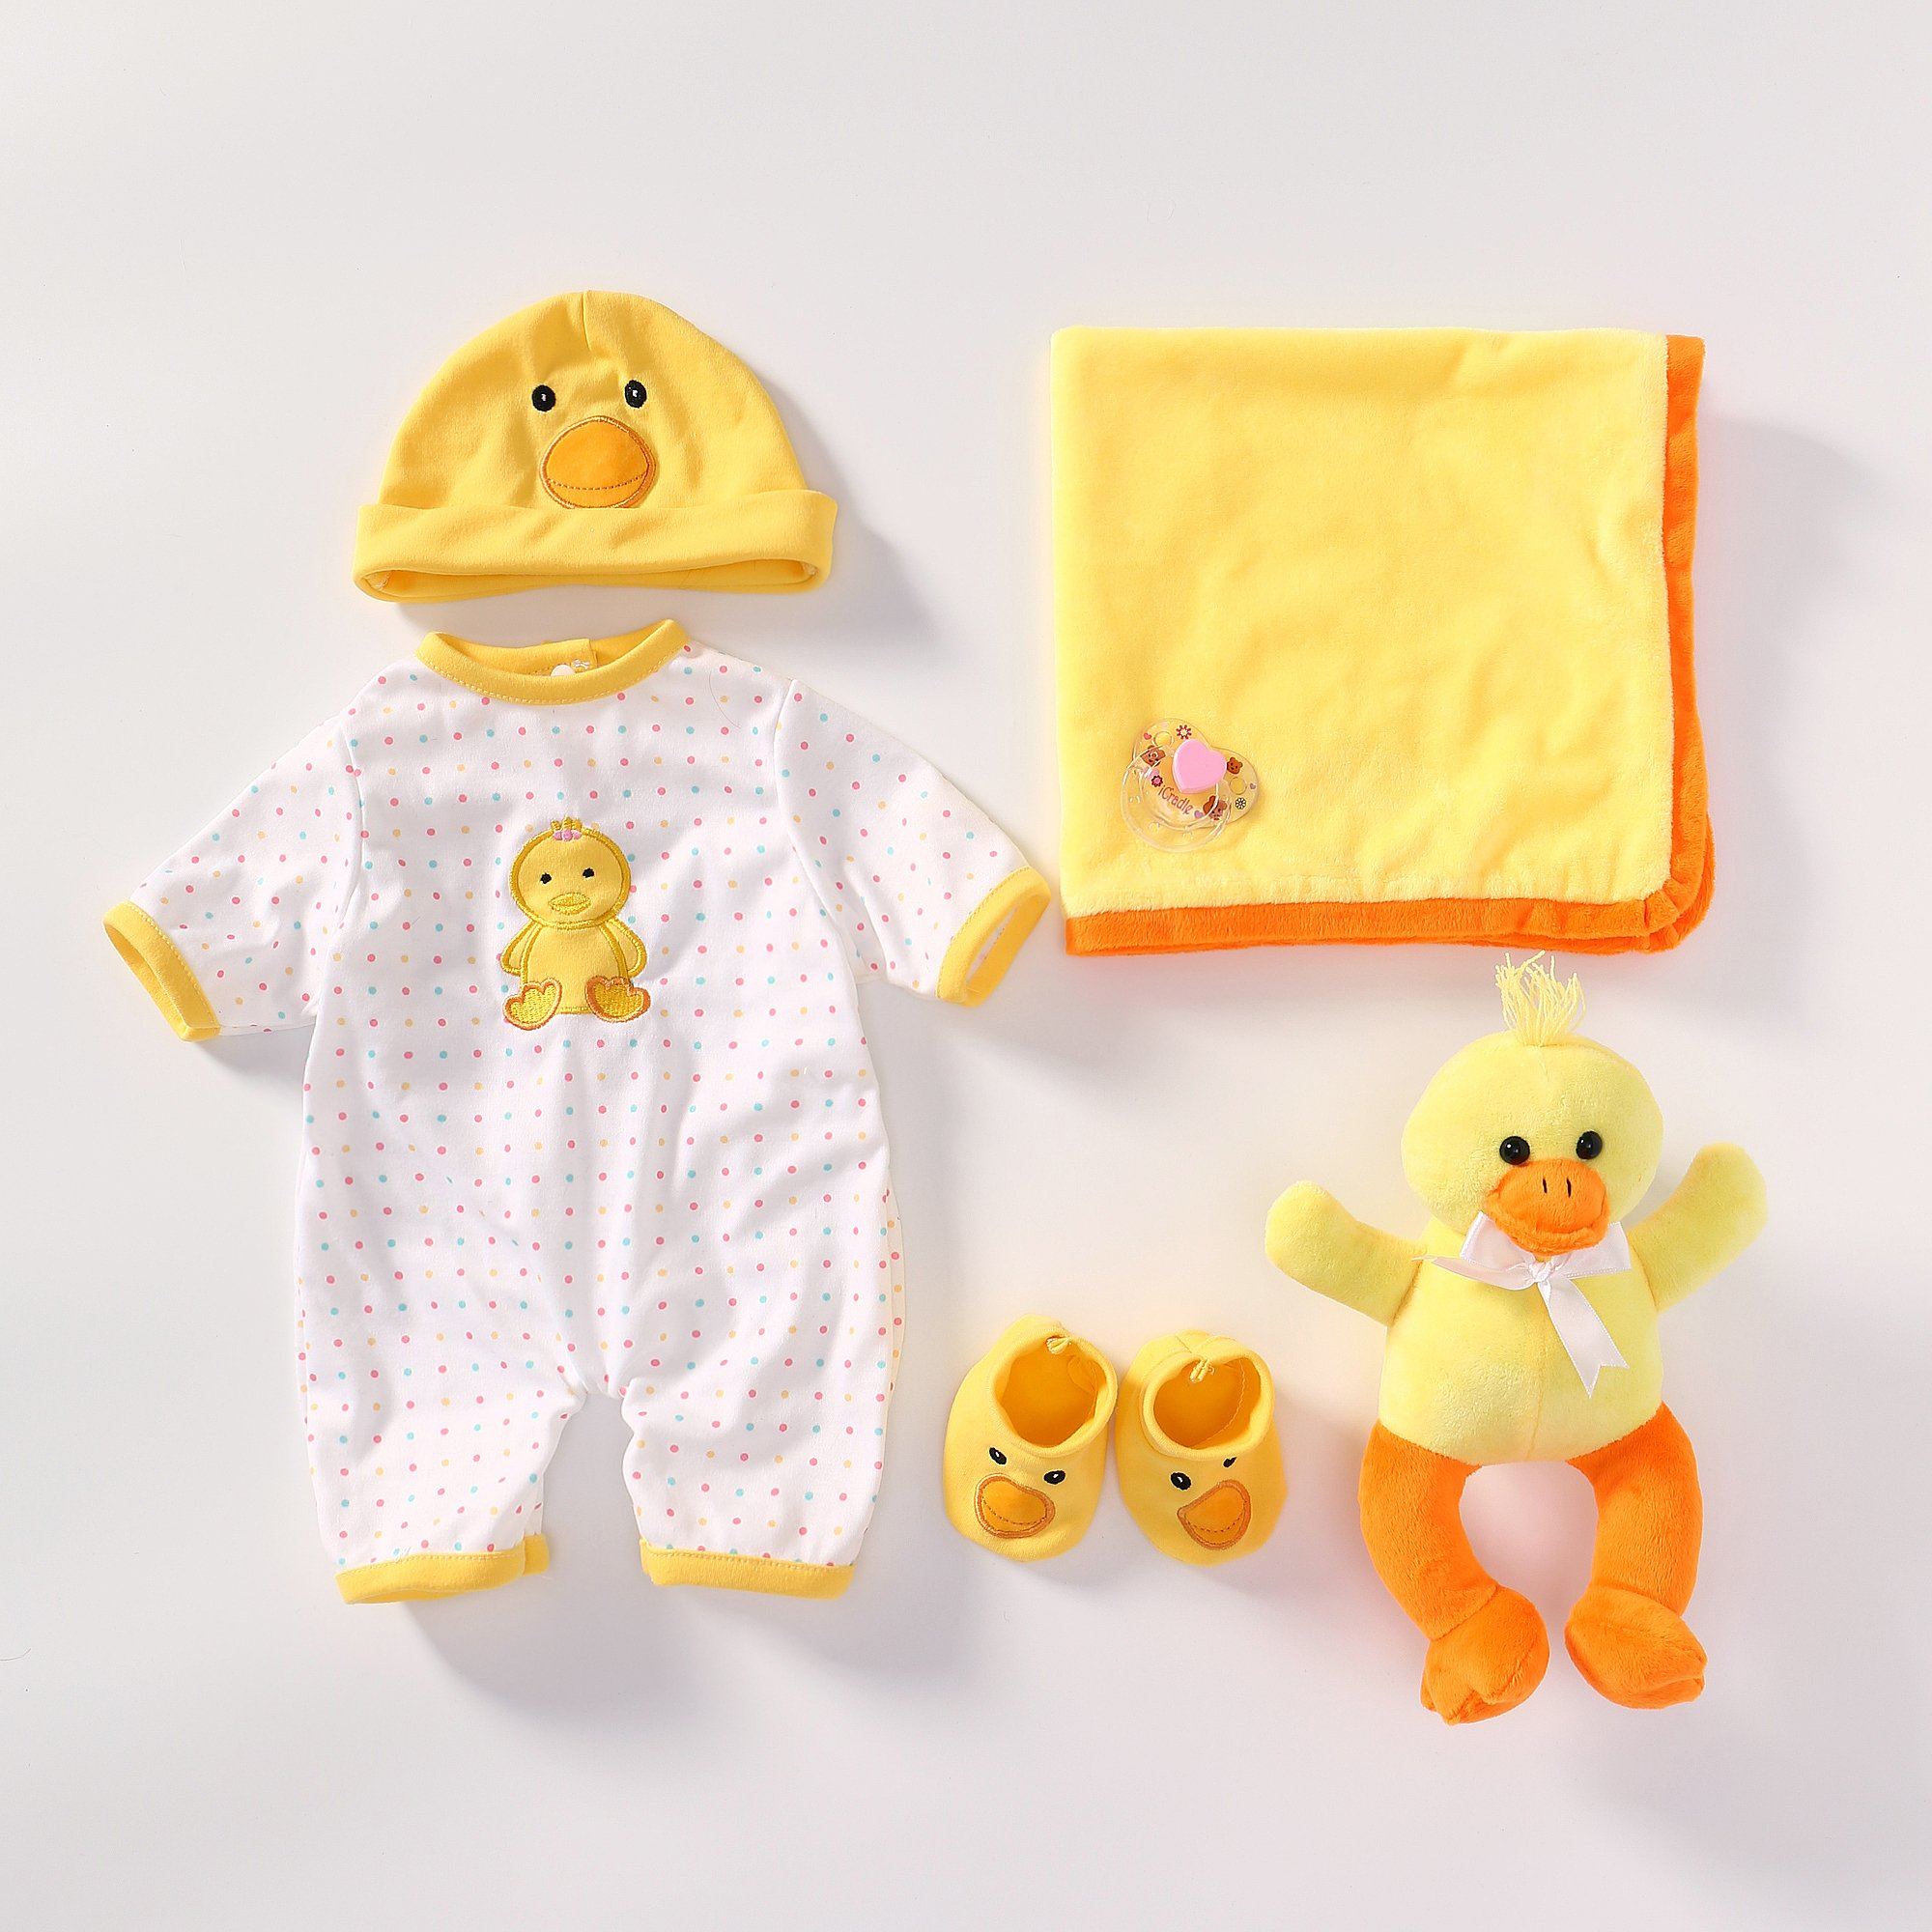 Reborn Baby Doll Outfits Accessories for 20''- 22'' Yellow Duck Pattern